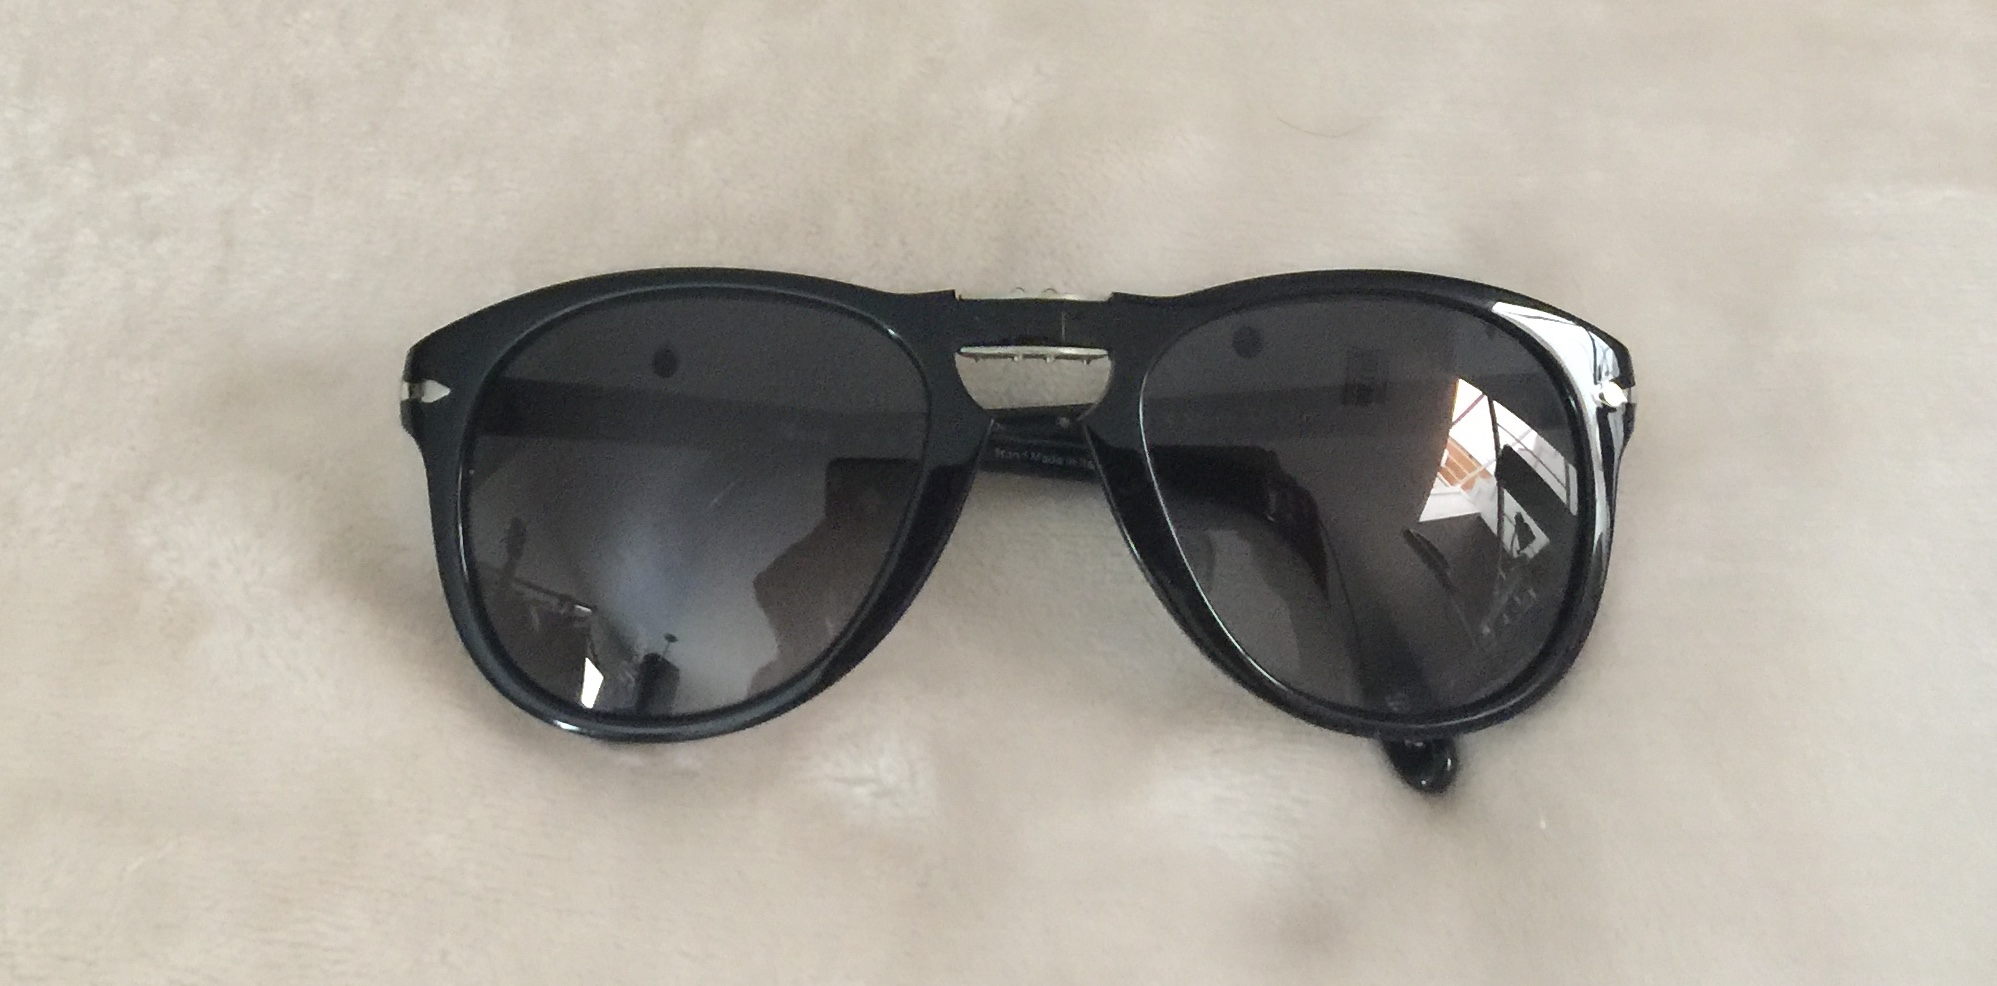 f54352f8dc Persol 714 Steve McQueen Size one size - Glasses for Sale - Grailed